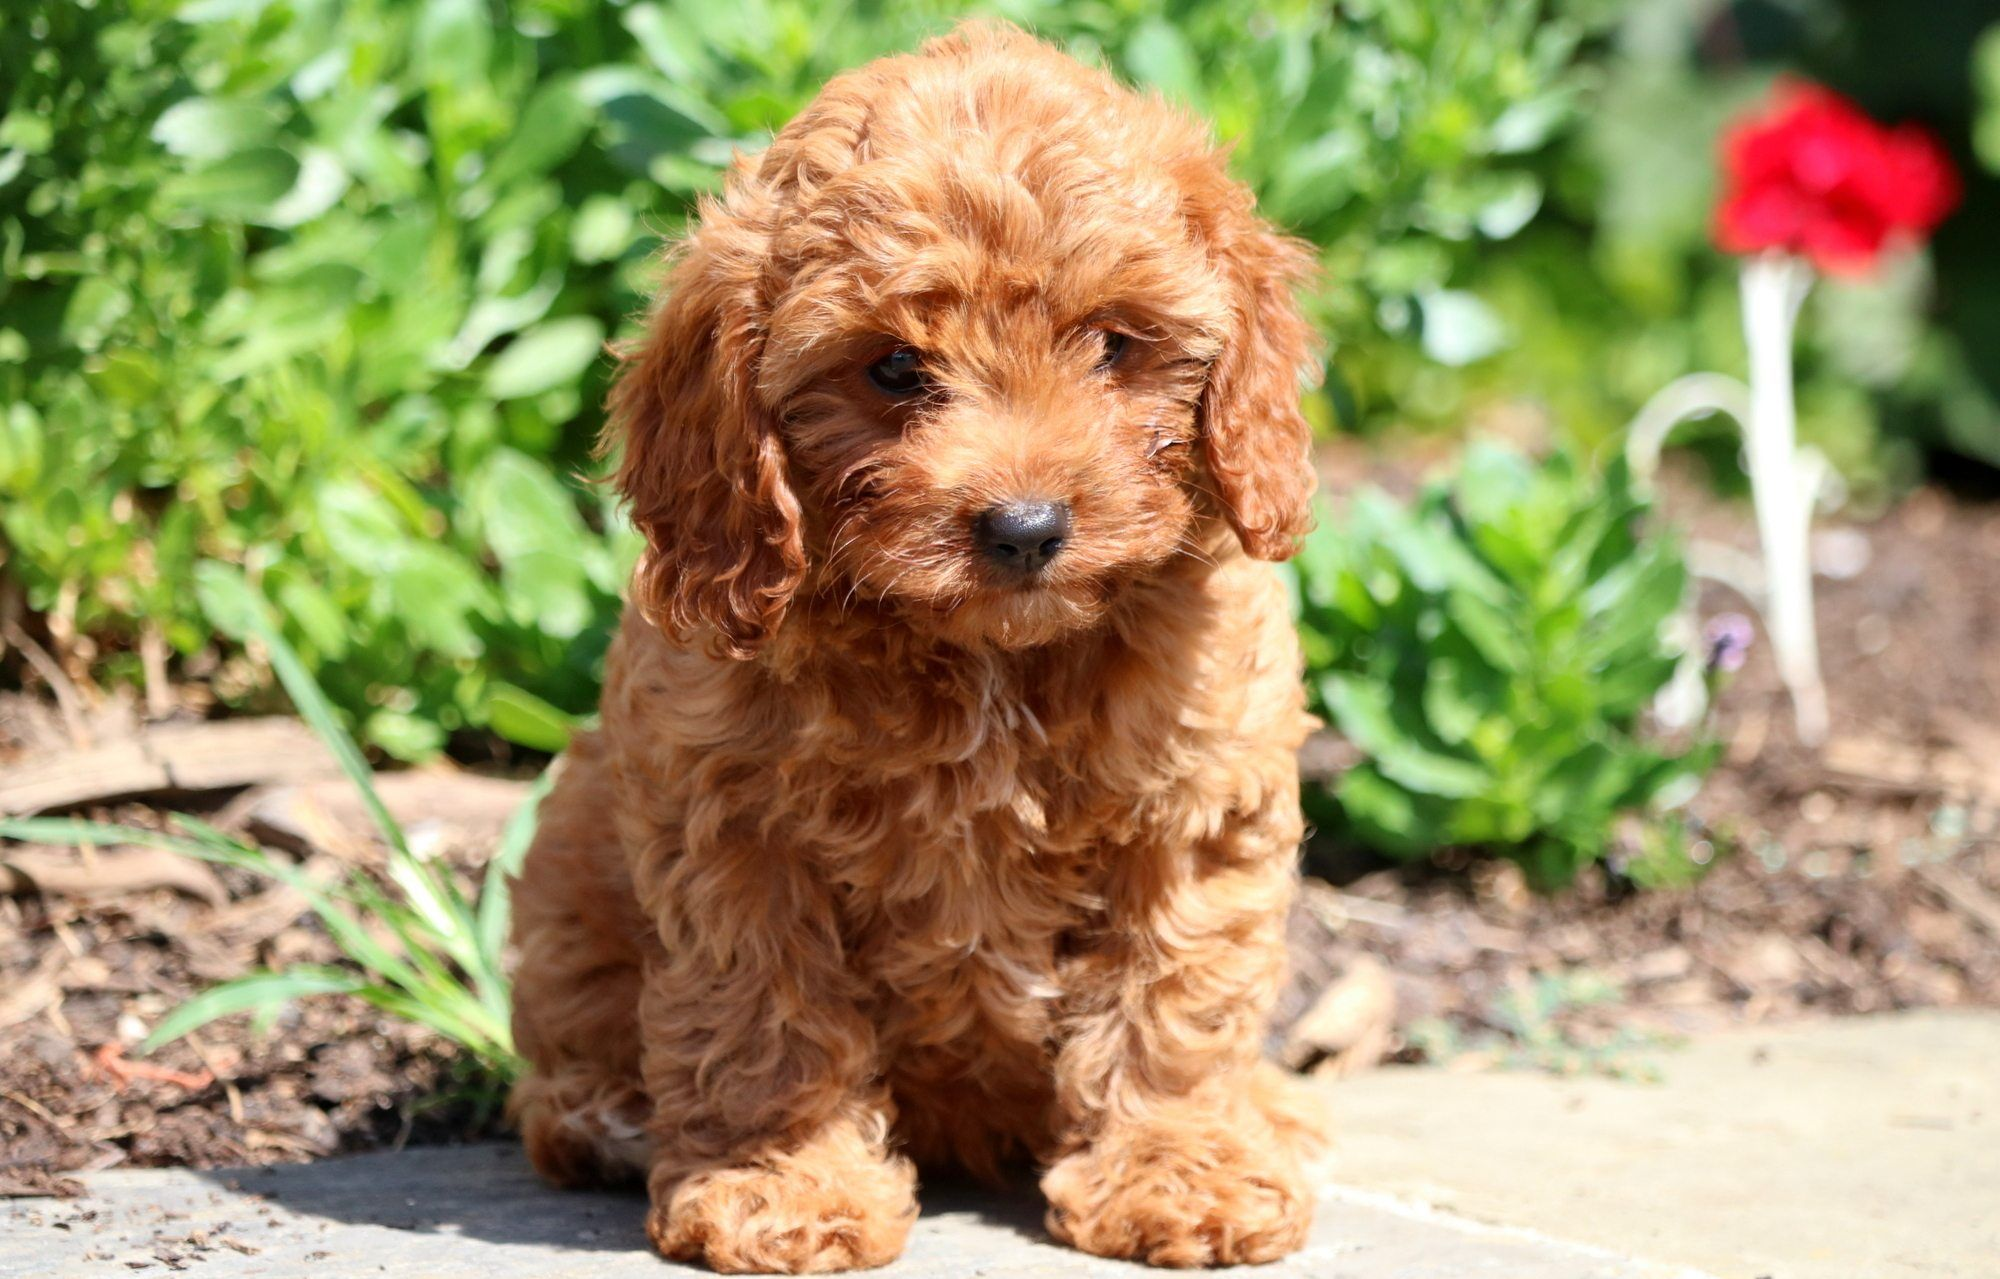 Cavapoo Puppies For Sale Puppy Adoption Keystone Puppies Cavapoo Puppies Cavapoo Puppies For Sale Cavapoo